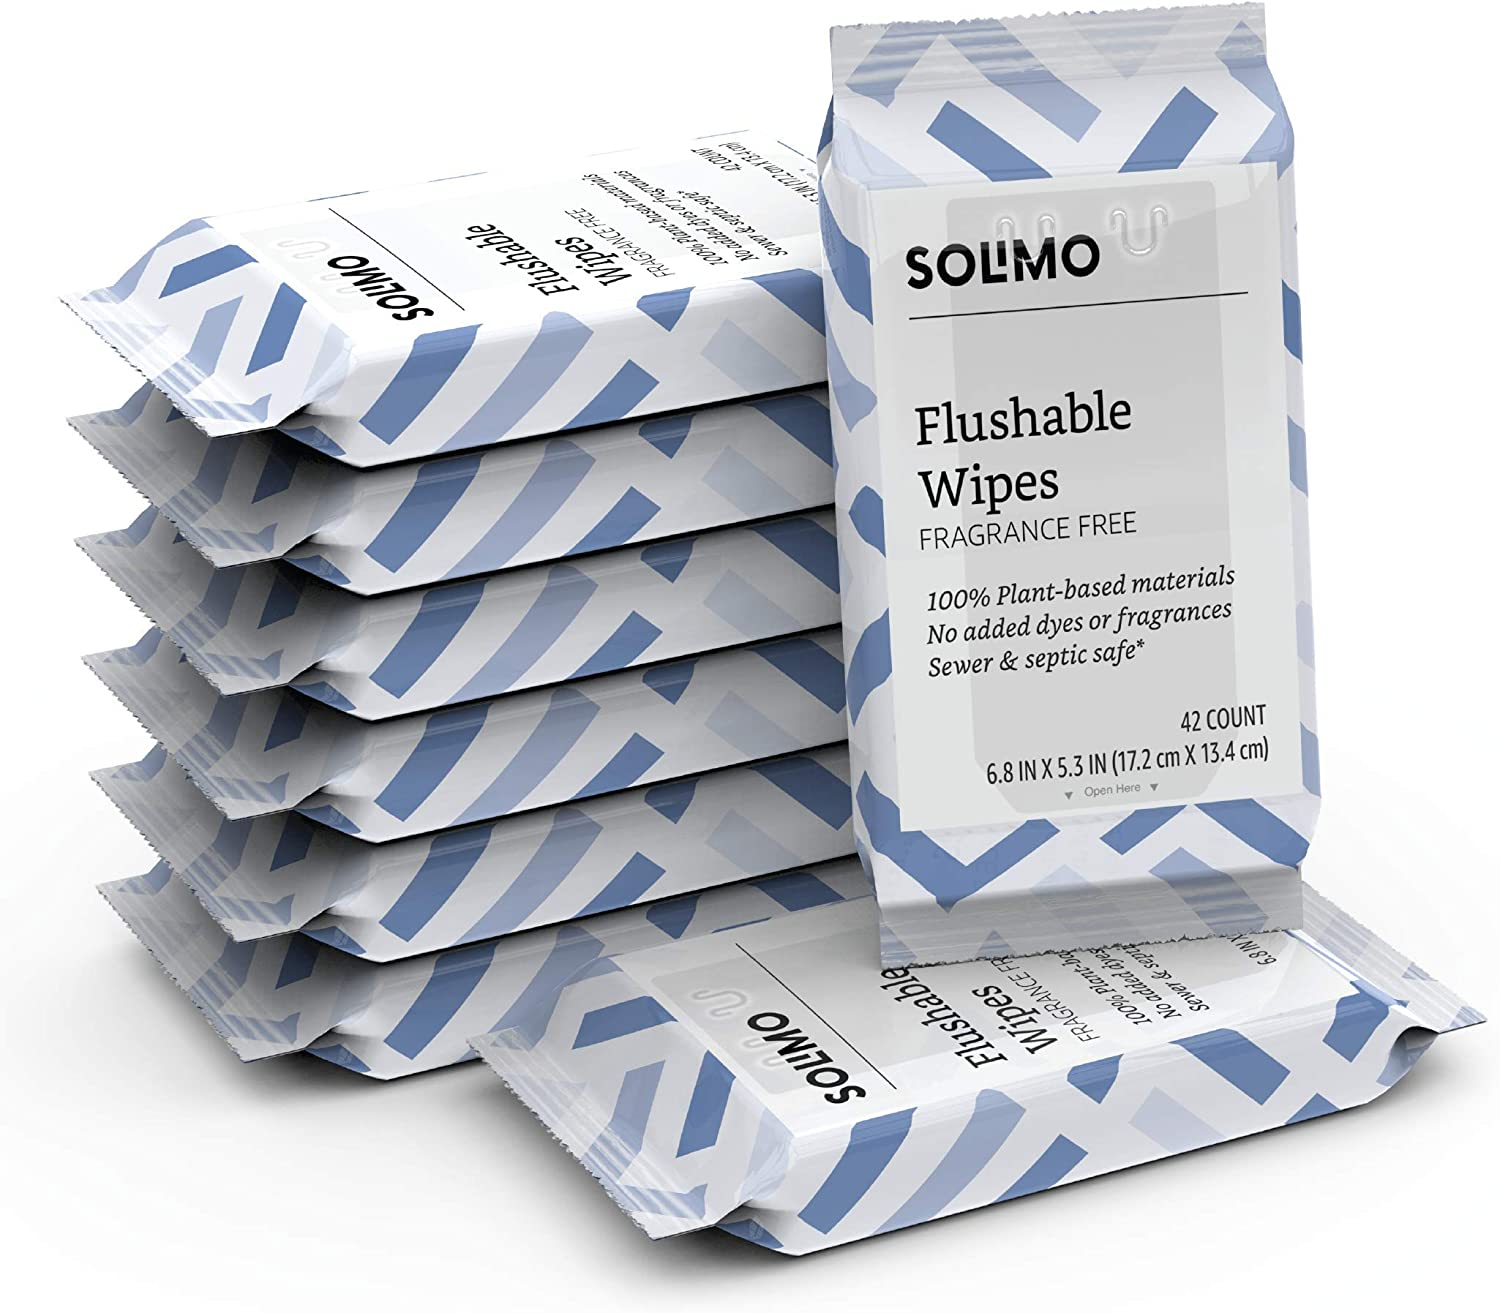 Amazon Brand - Solimo Flushable Adult Toilet Wipes